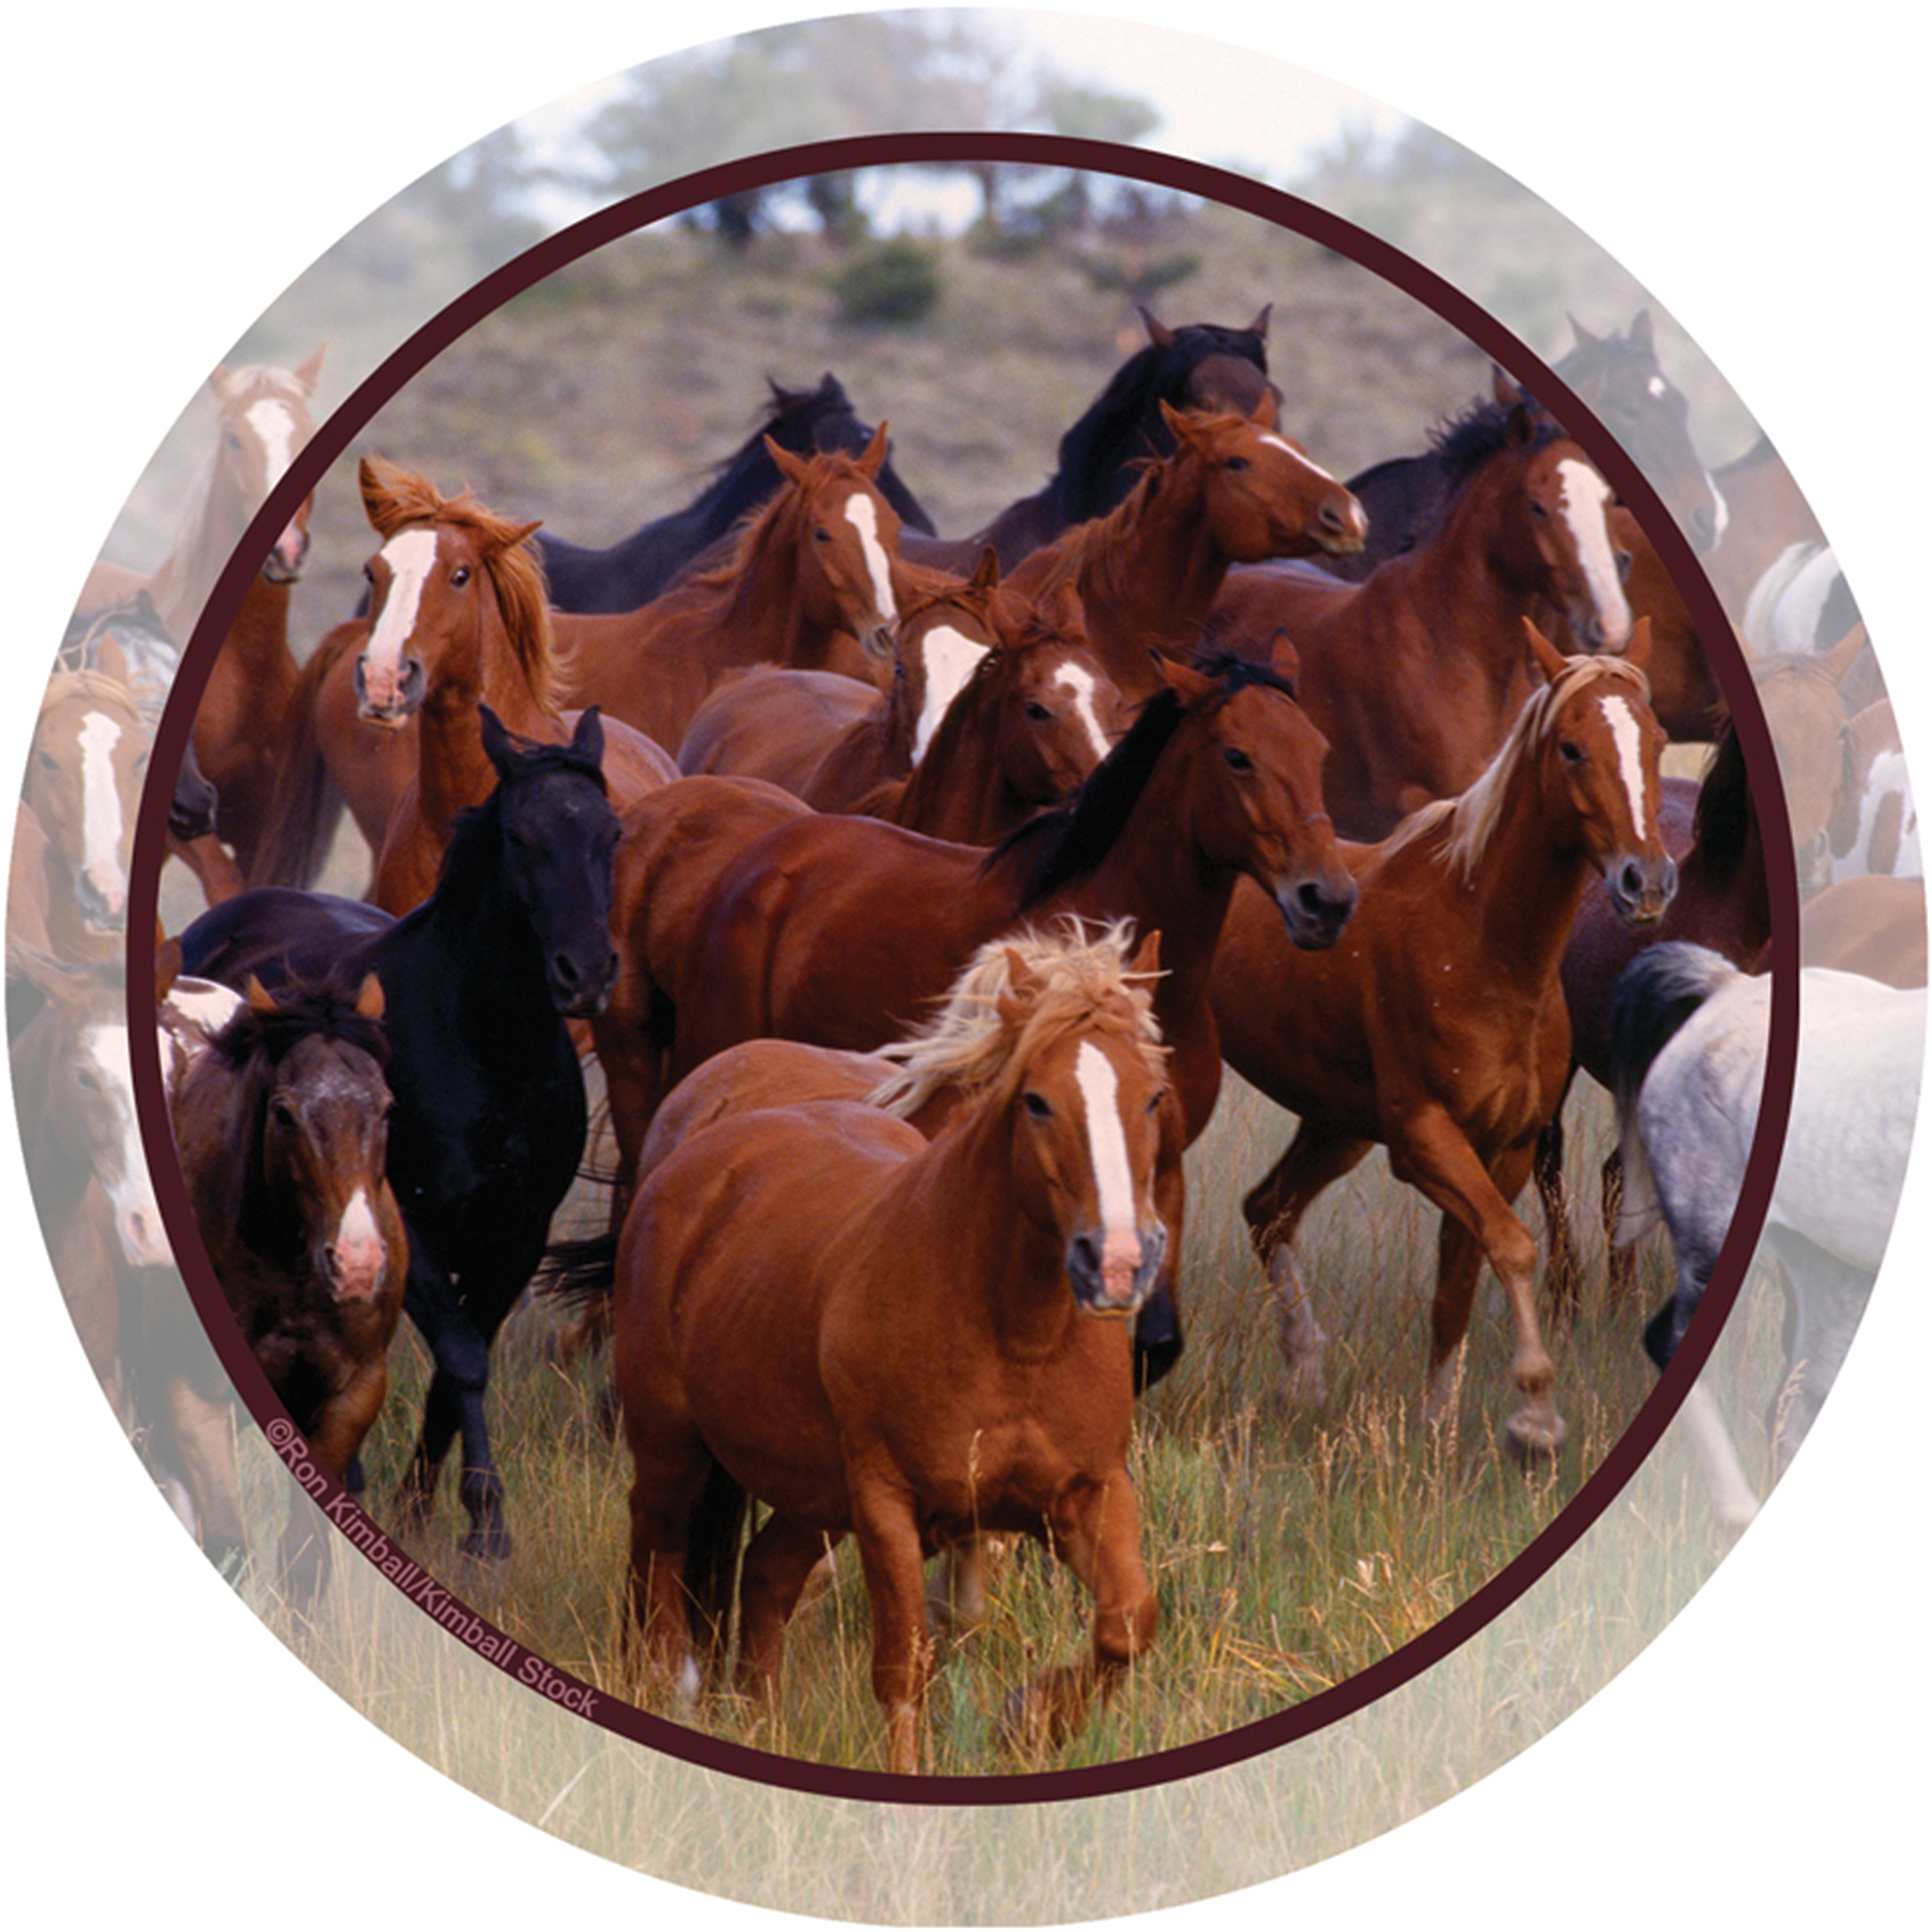 Thirstystone Occasions Drink Coasters, Horse Collage